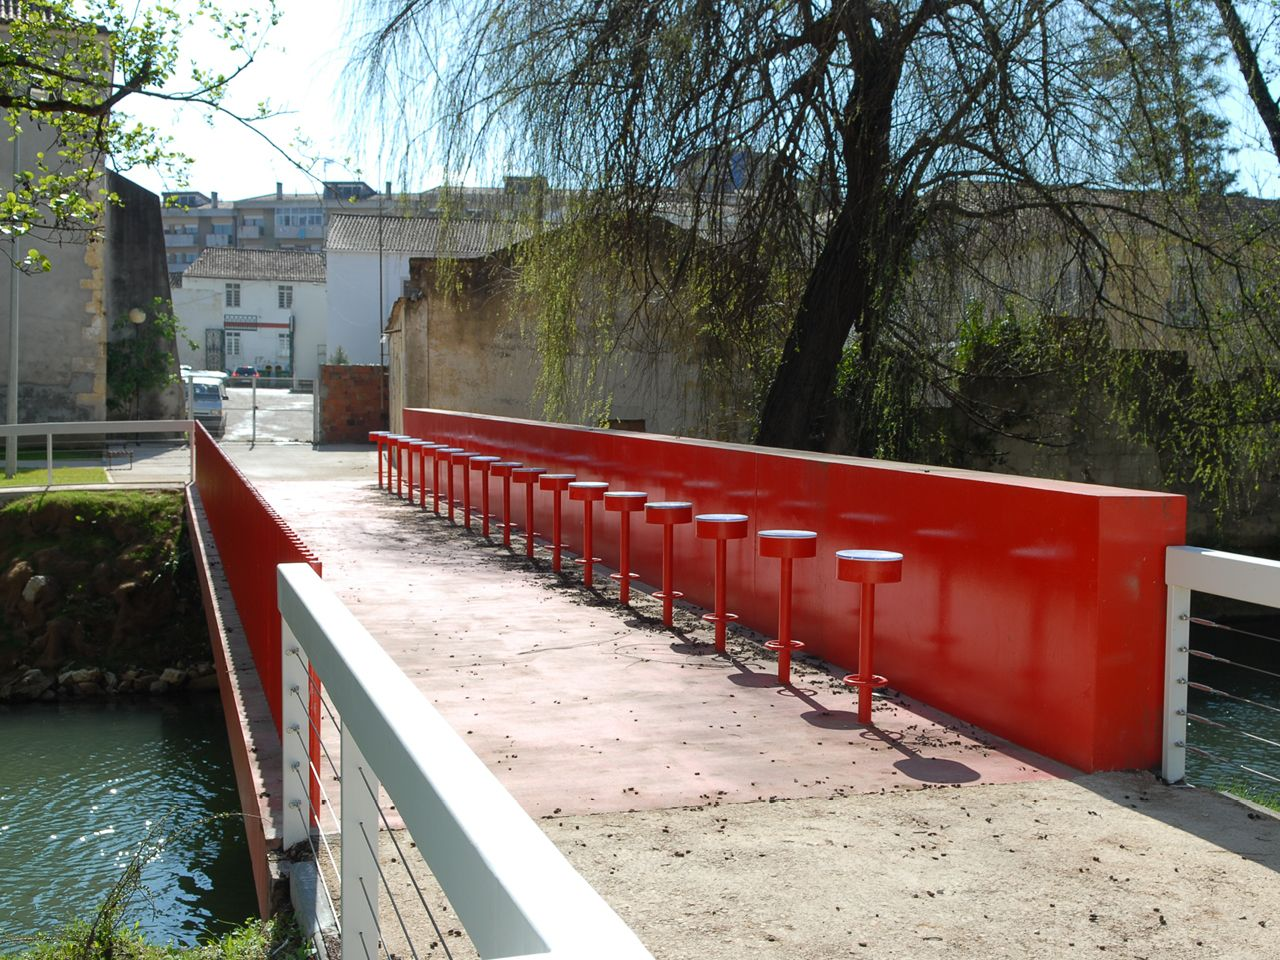 Rotterdam-based MVRDV designed a suite of themed pedestrian bridges for the city of Leira in central Portugal, including the Bar Bridge shown here.